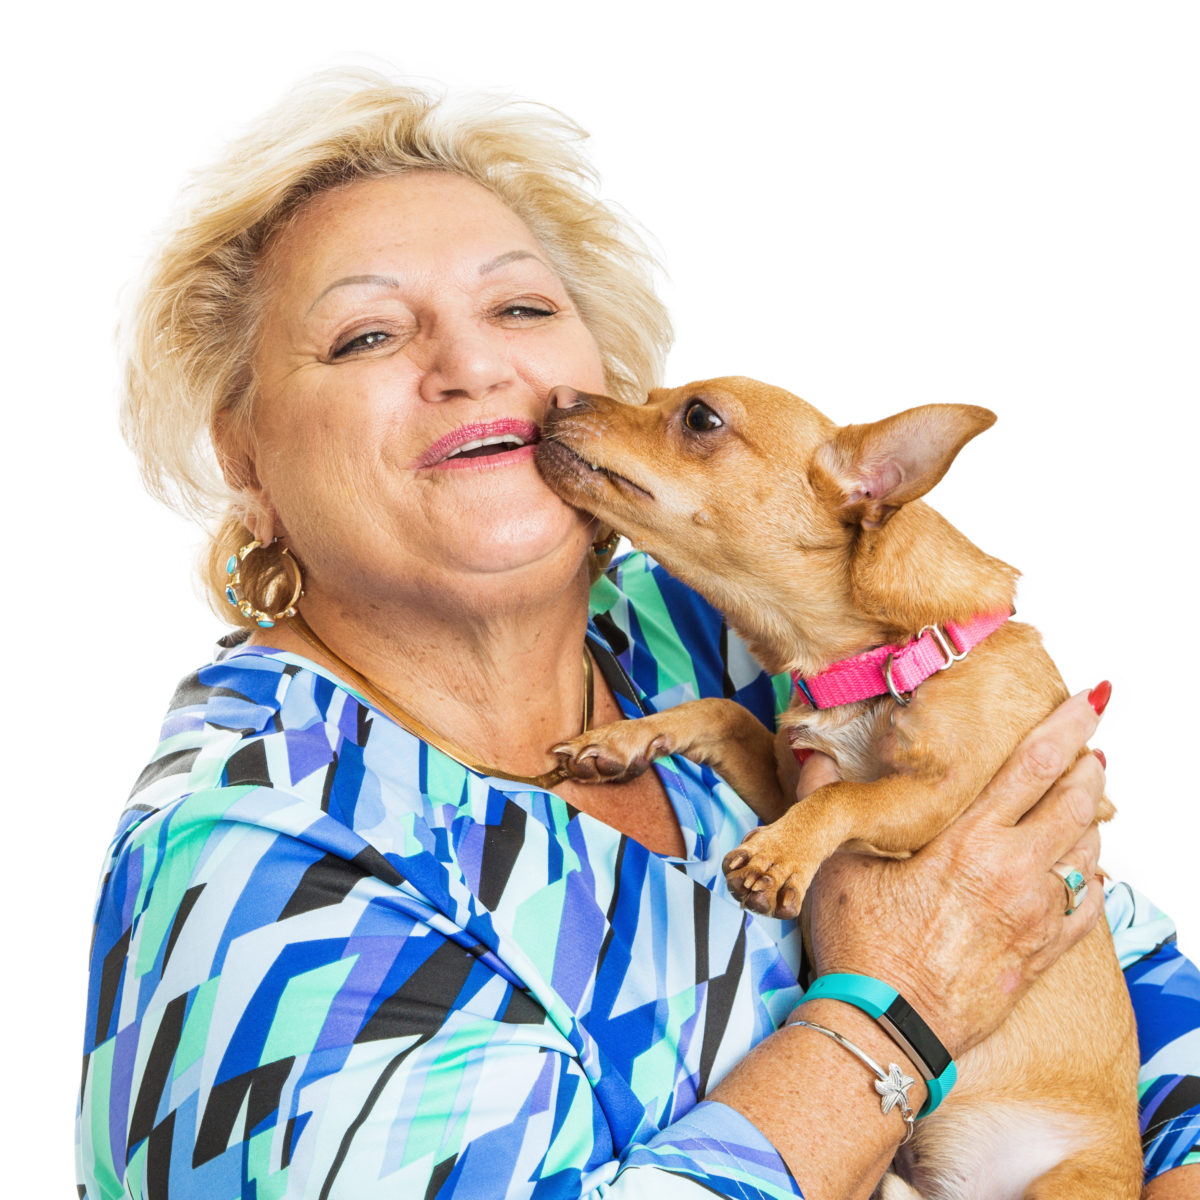 Ten Ways To Make Friends With the Mother in-law's Chihuahua